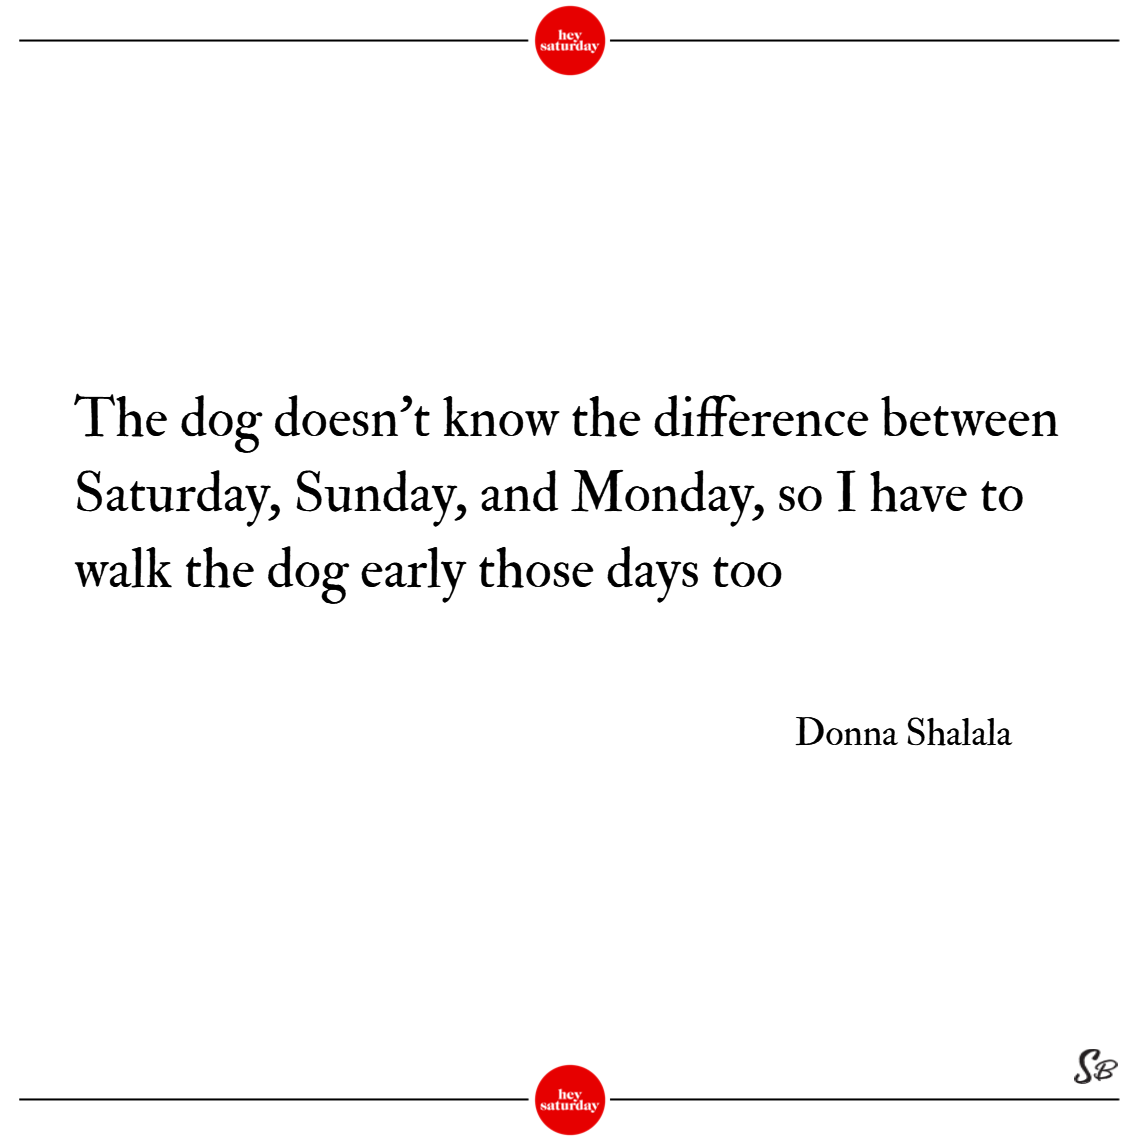 The dog doesn't know the difference between saturday, sunday, and monday, so i have to walk the dog early those days too. – donna shalala